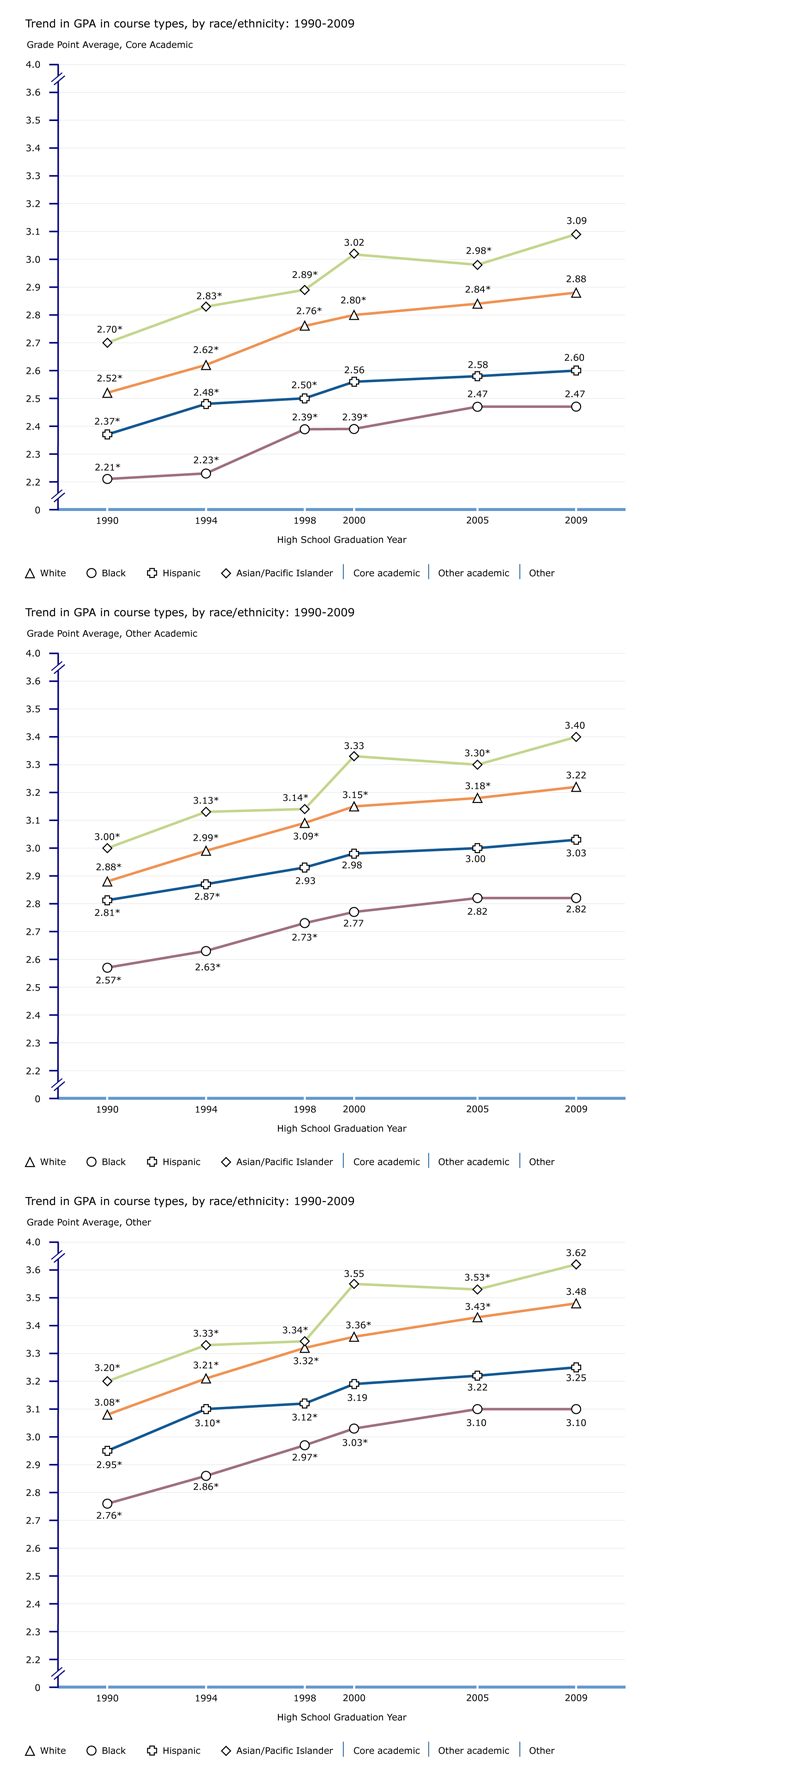 Trend in GPA in core academic courses, by race/ethnicity: 1990-2009